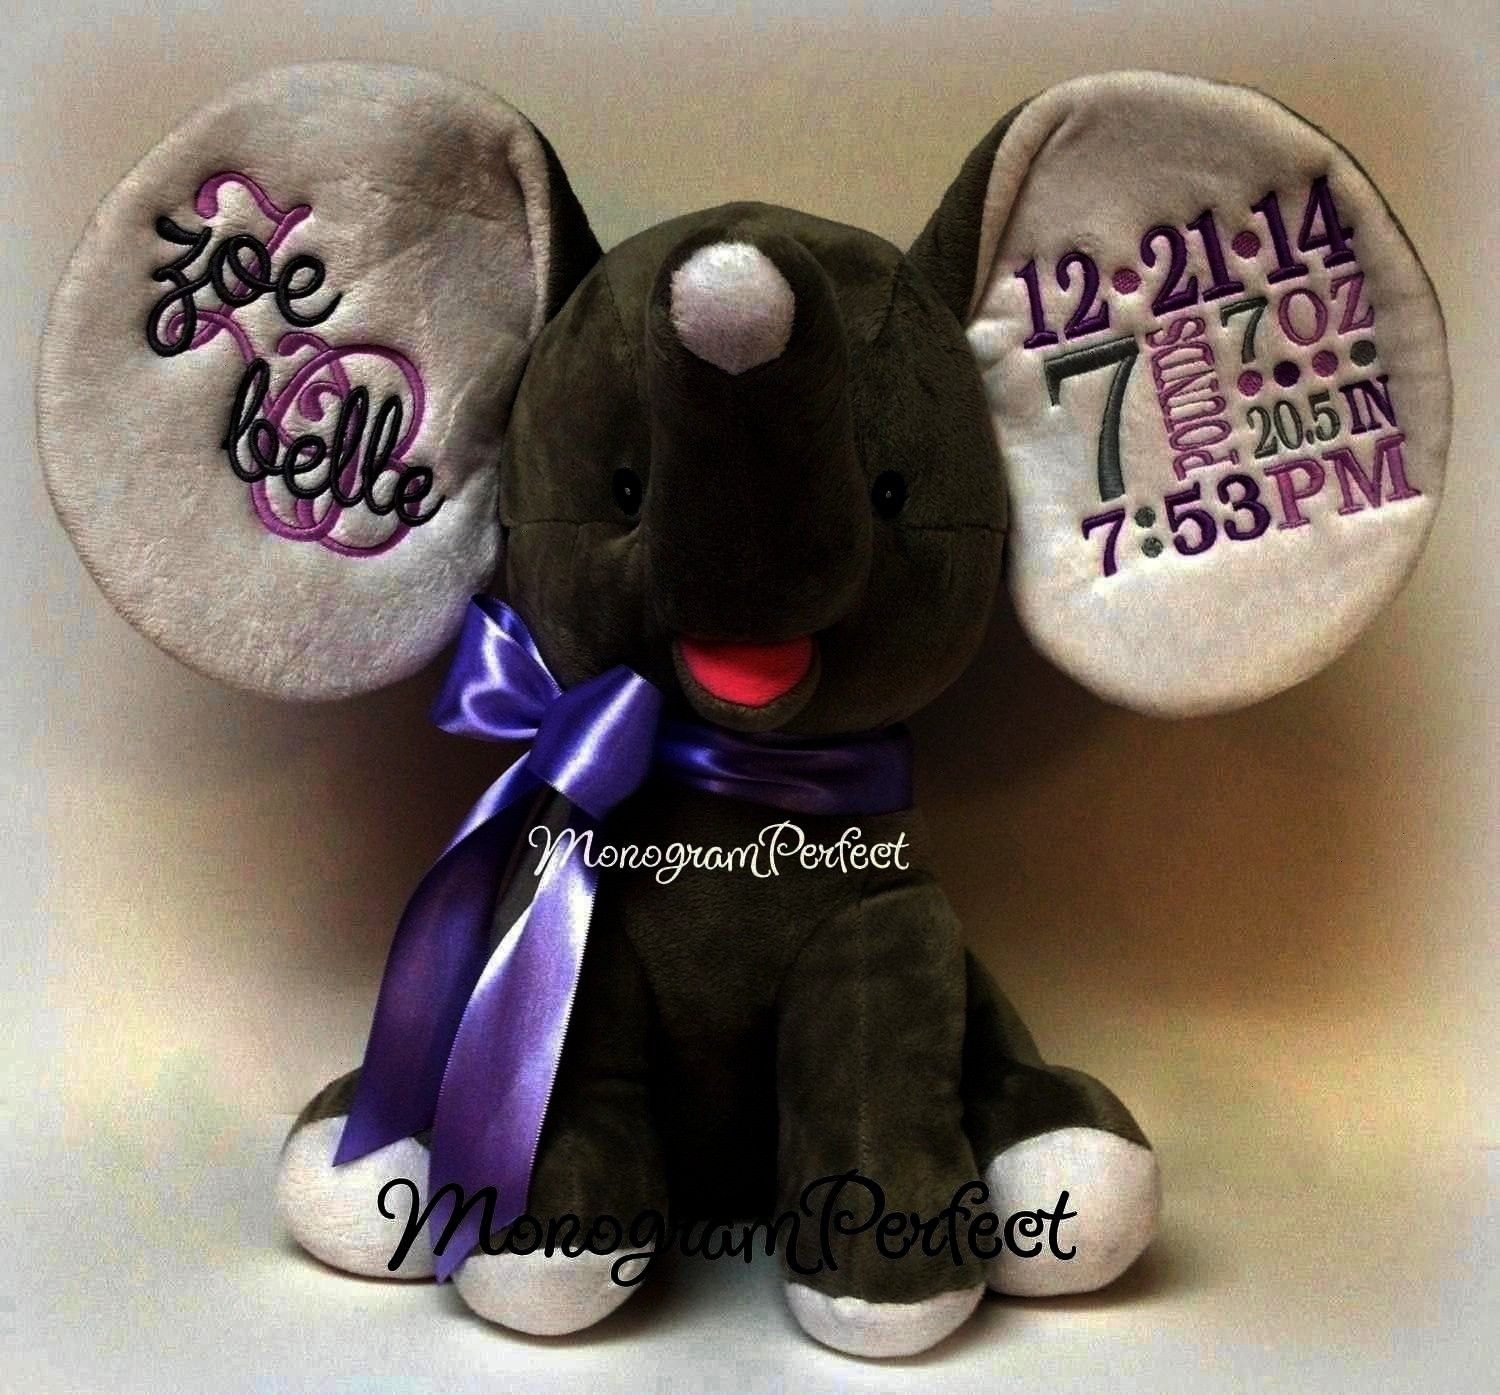 Birth Announcement Elephant Personalized Gray  Purple Birth Announcement Elephant  MonogramPerfect Retiring Design Personalized Gray  Purple Birth Announcement Elephant P...